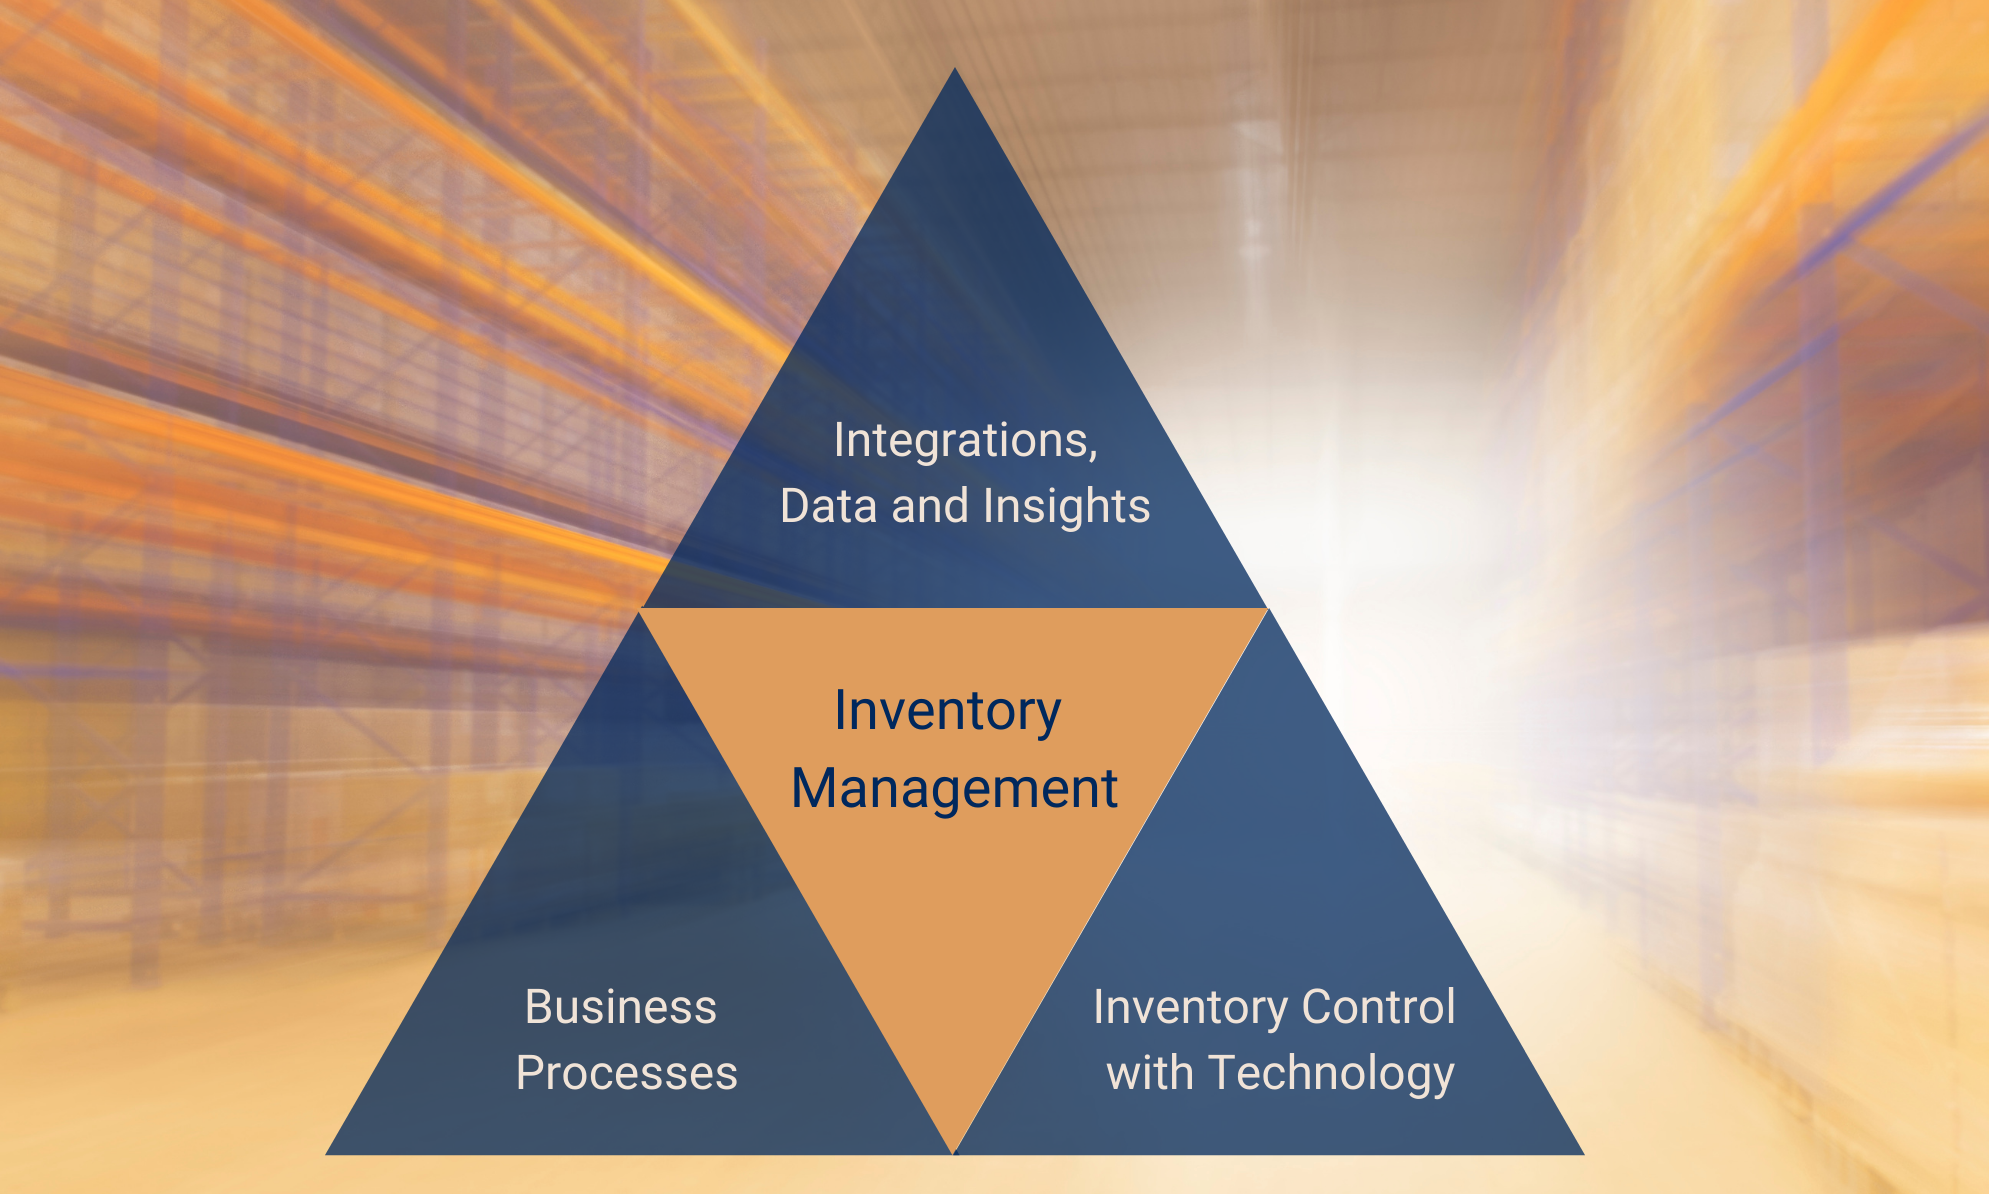 3 Ways to Improve Inventory Management in an Unpredictable 2020